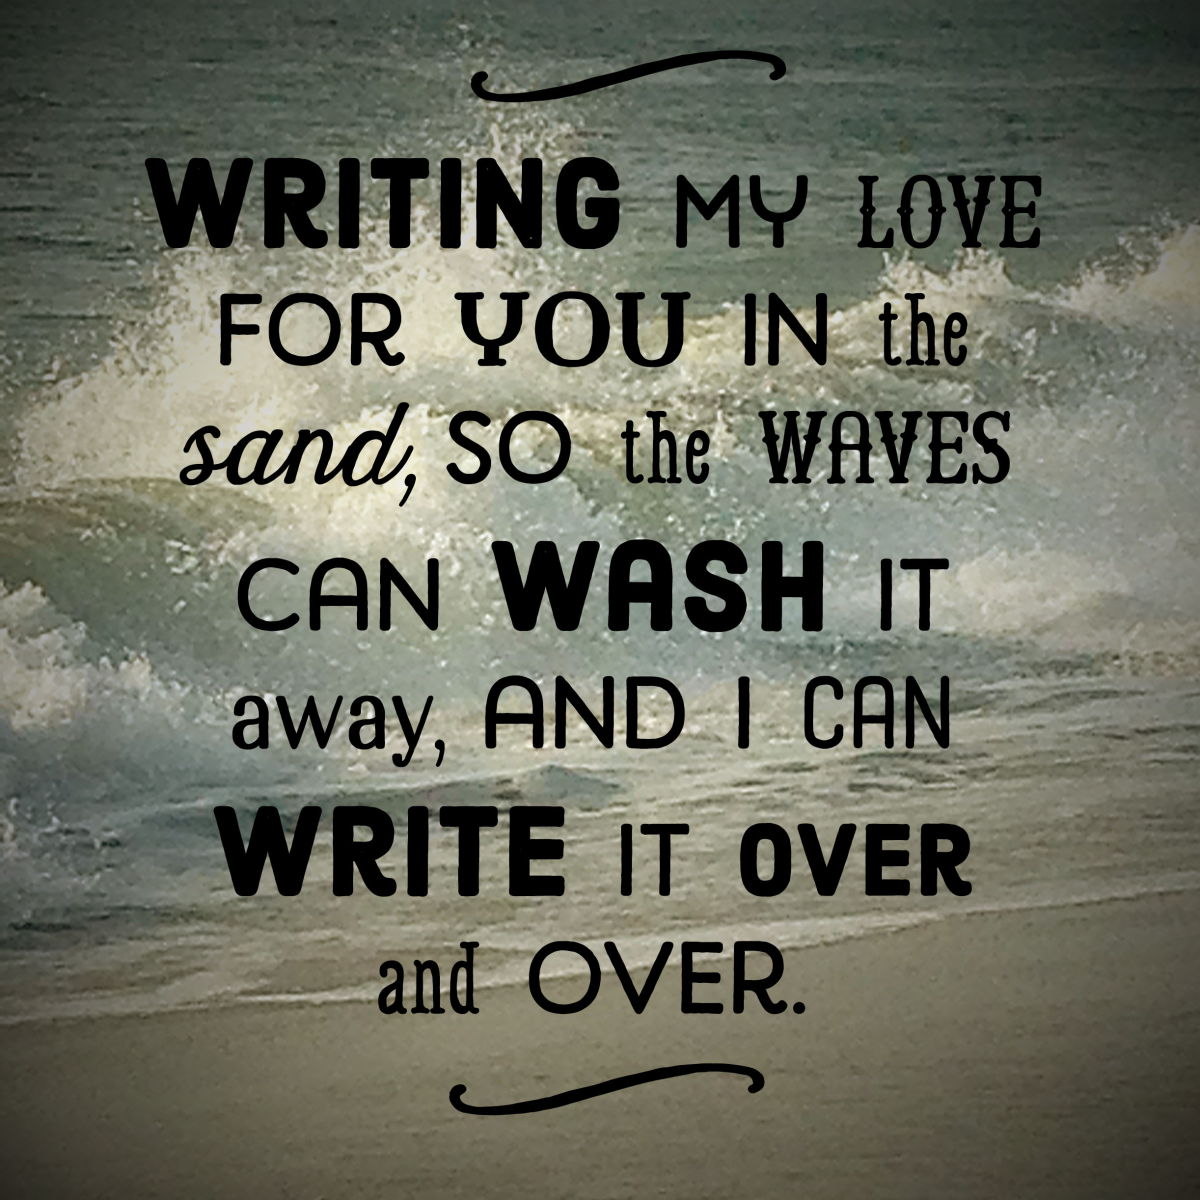 Short love message perfect for SMS: Writing my love for you in the sand, so the waves can wash it away, and I can write it over and over.